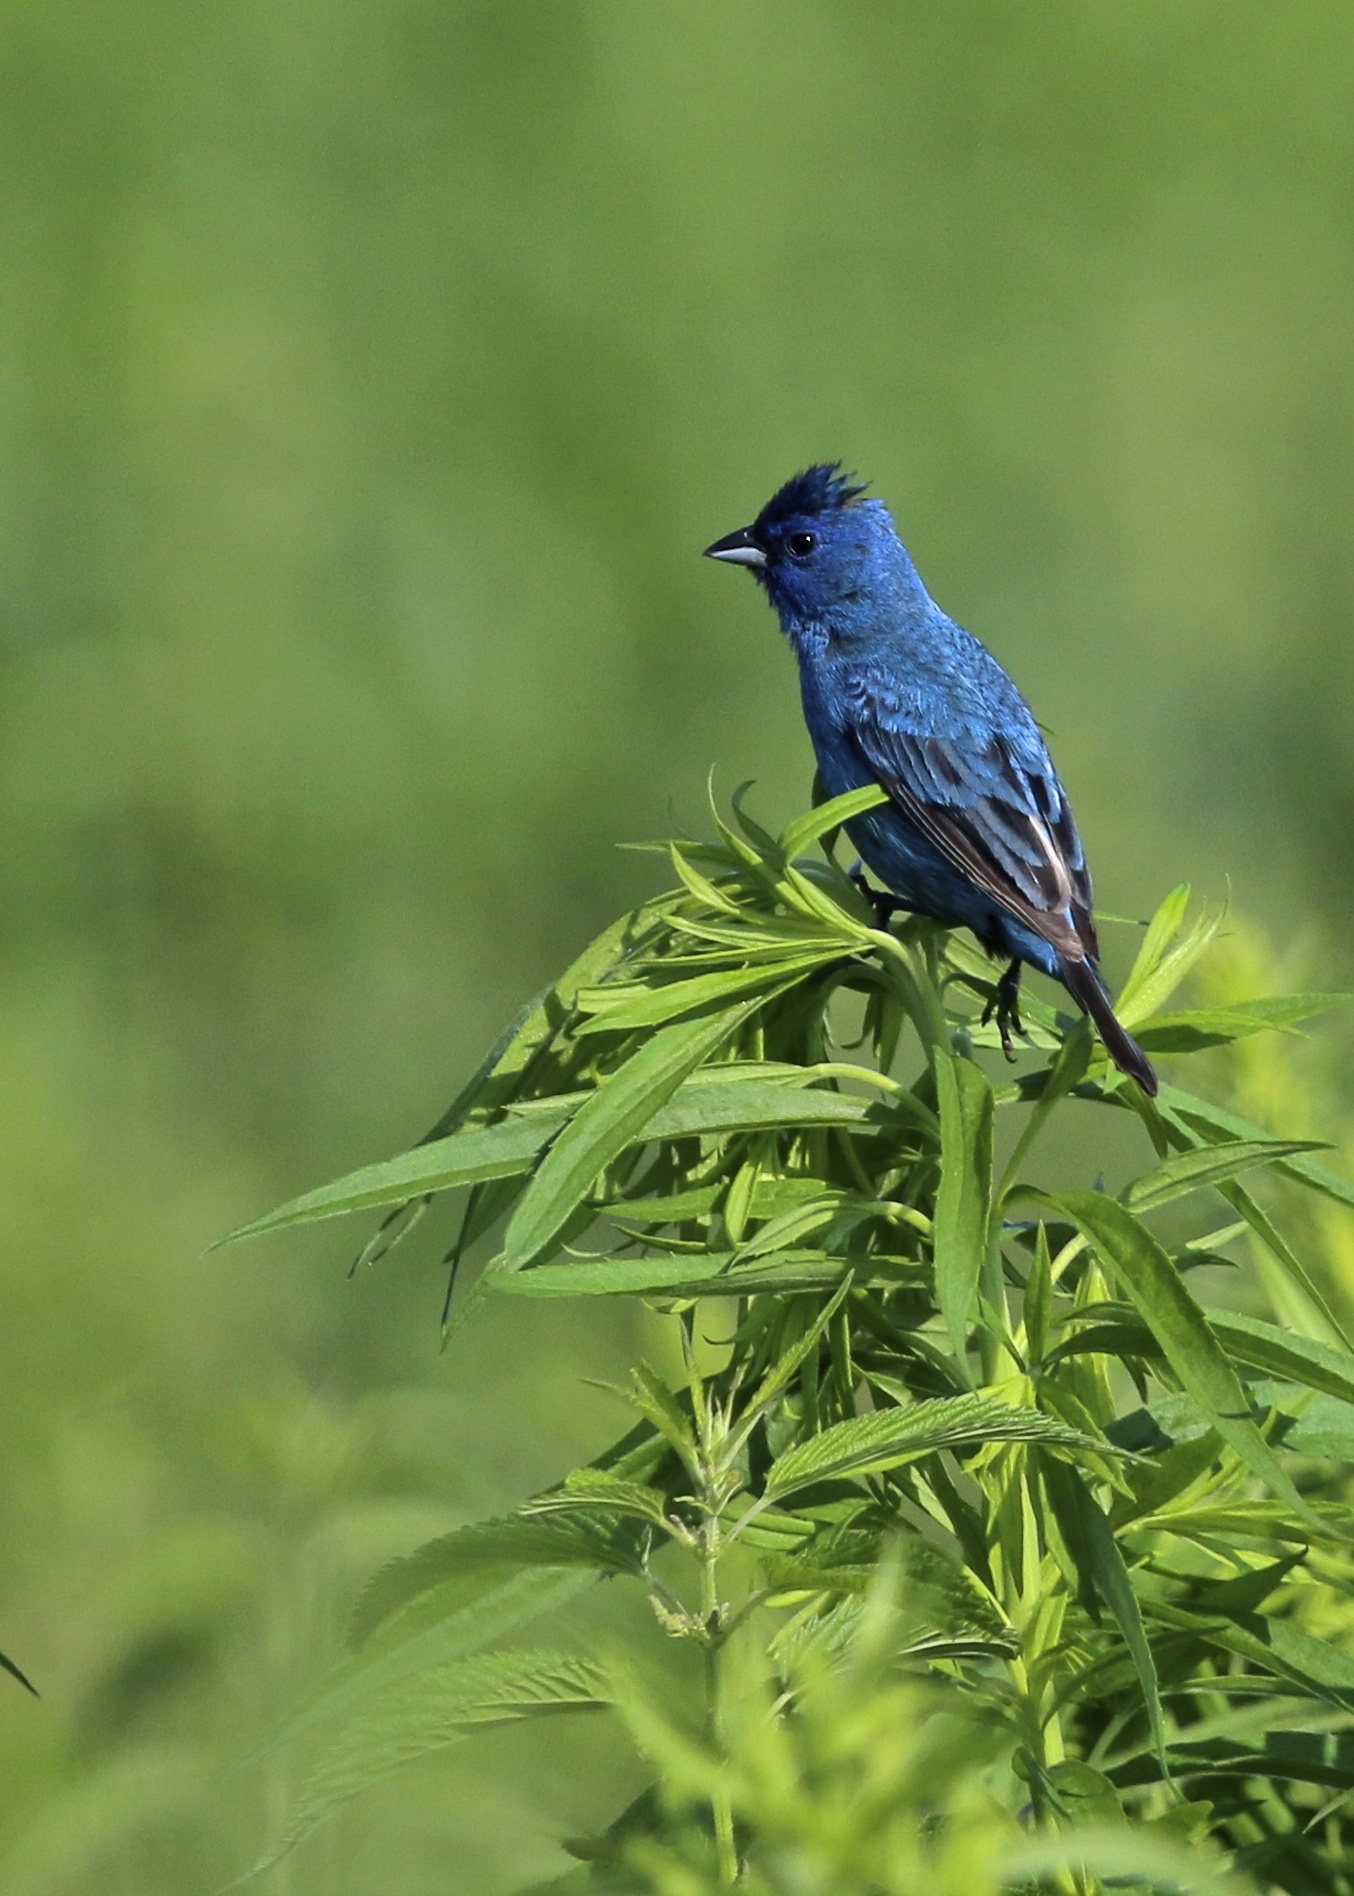 ~One of many Indigo Buntings out on Liberty Lane, Wallkill River NWR, 7/11/15.~